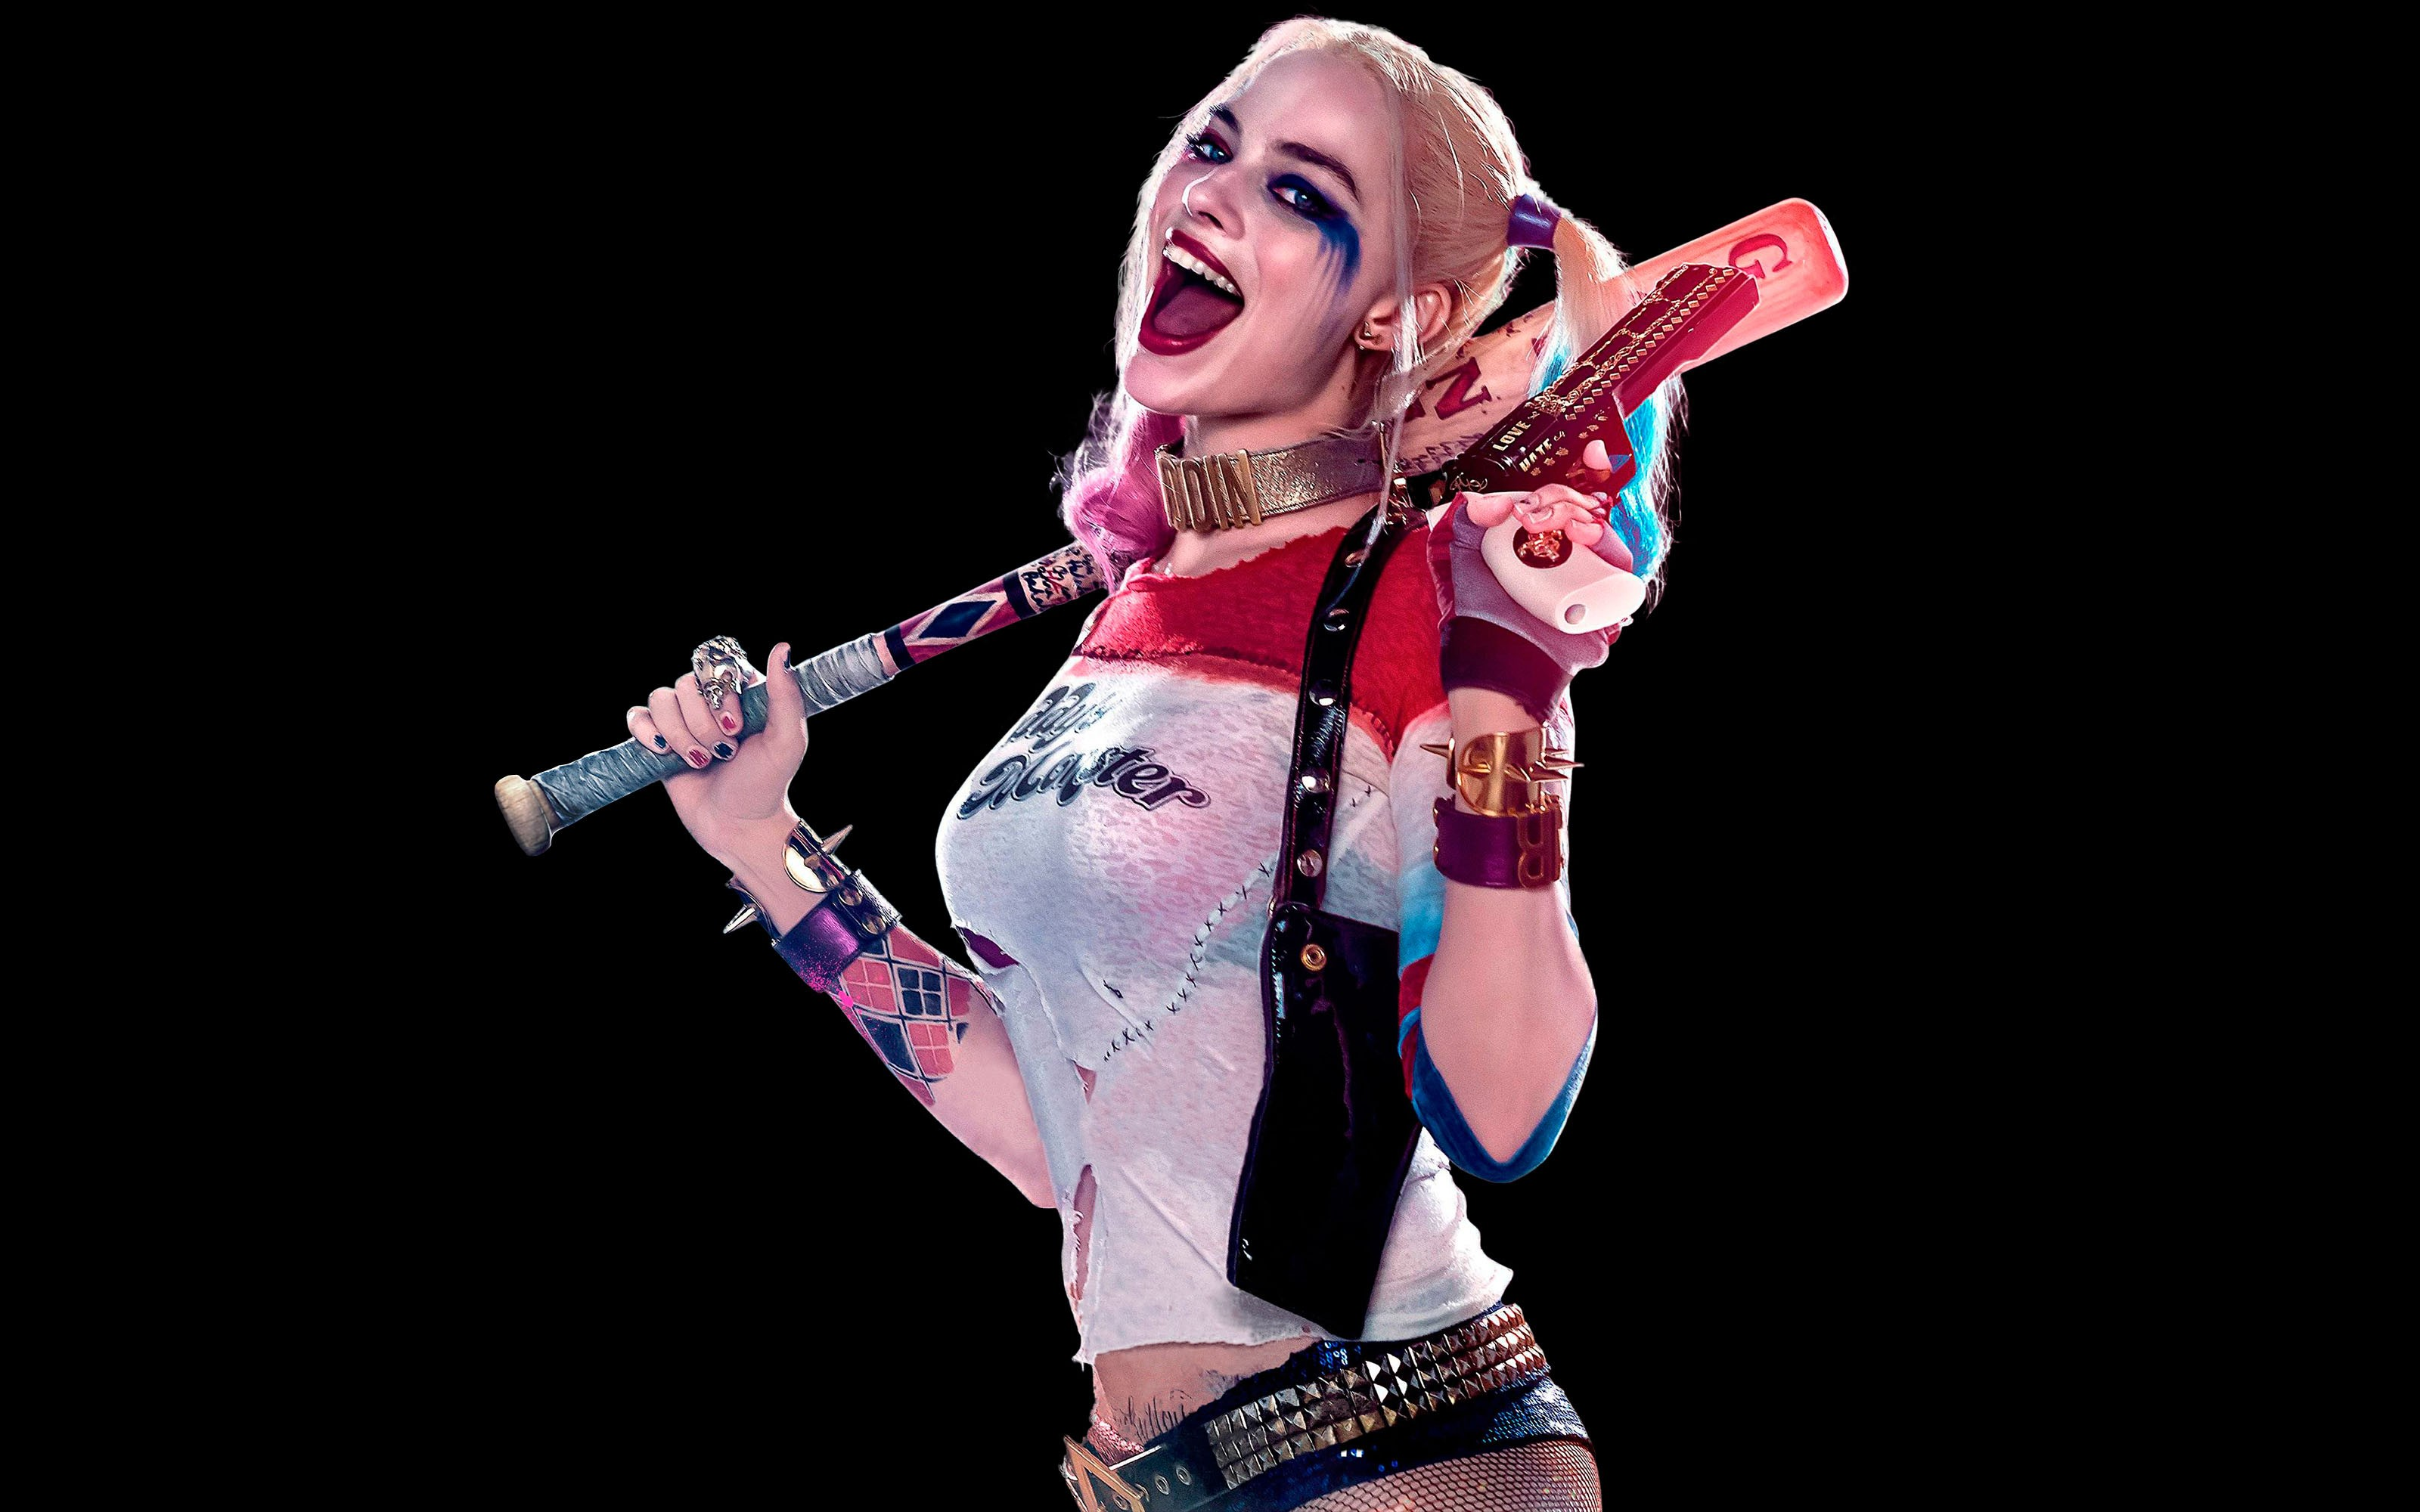 Margot Robbie Harley Quinn Wallpaper Download Free Cool